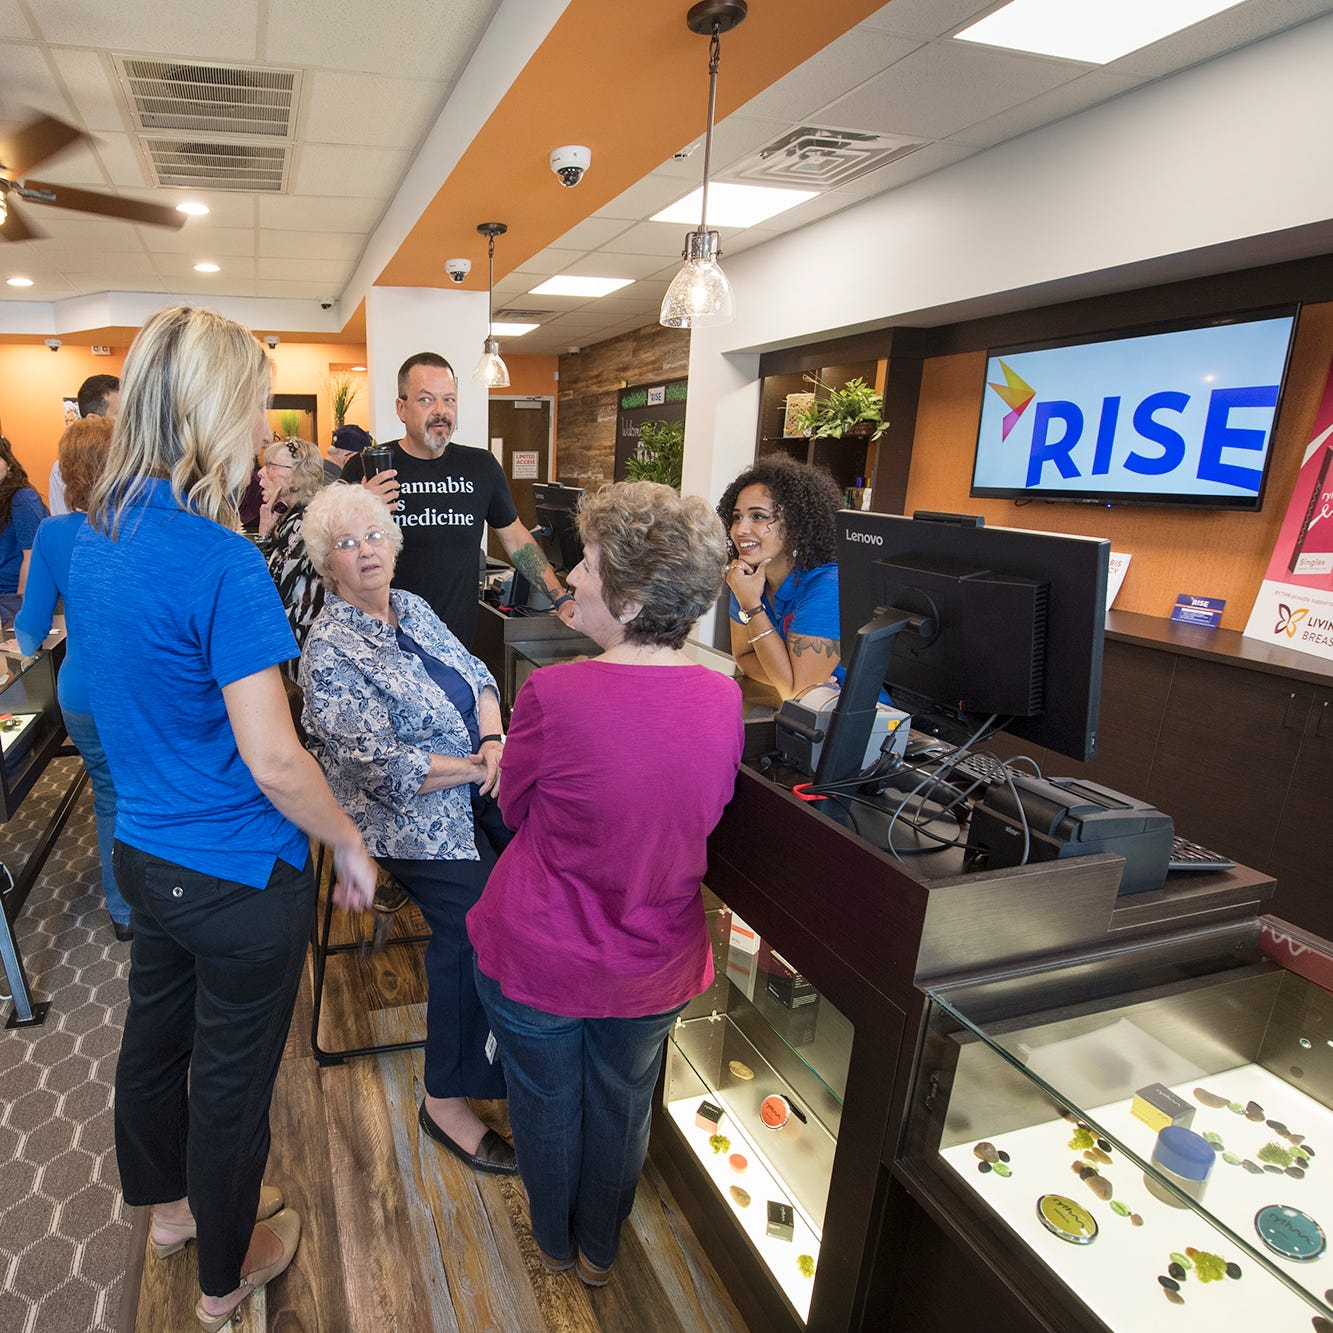 Take a look inside medical marijuana dispensary opening in West Manchester Township